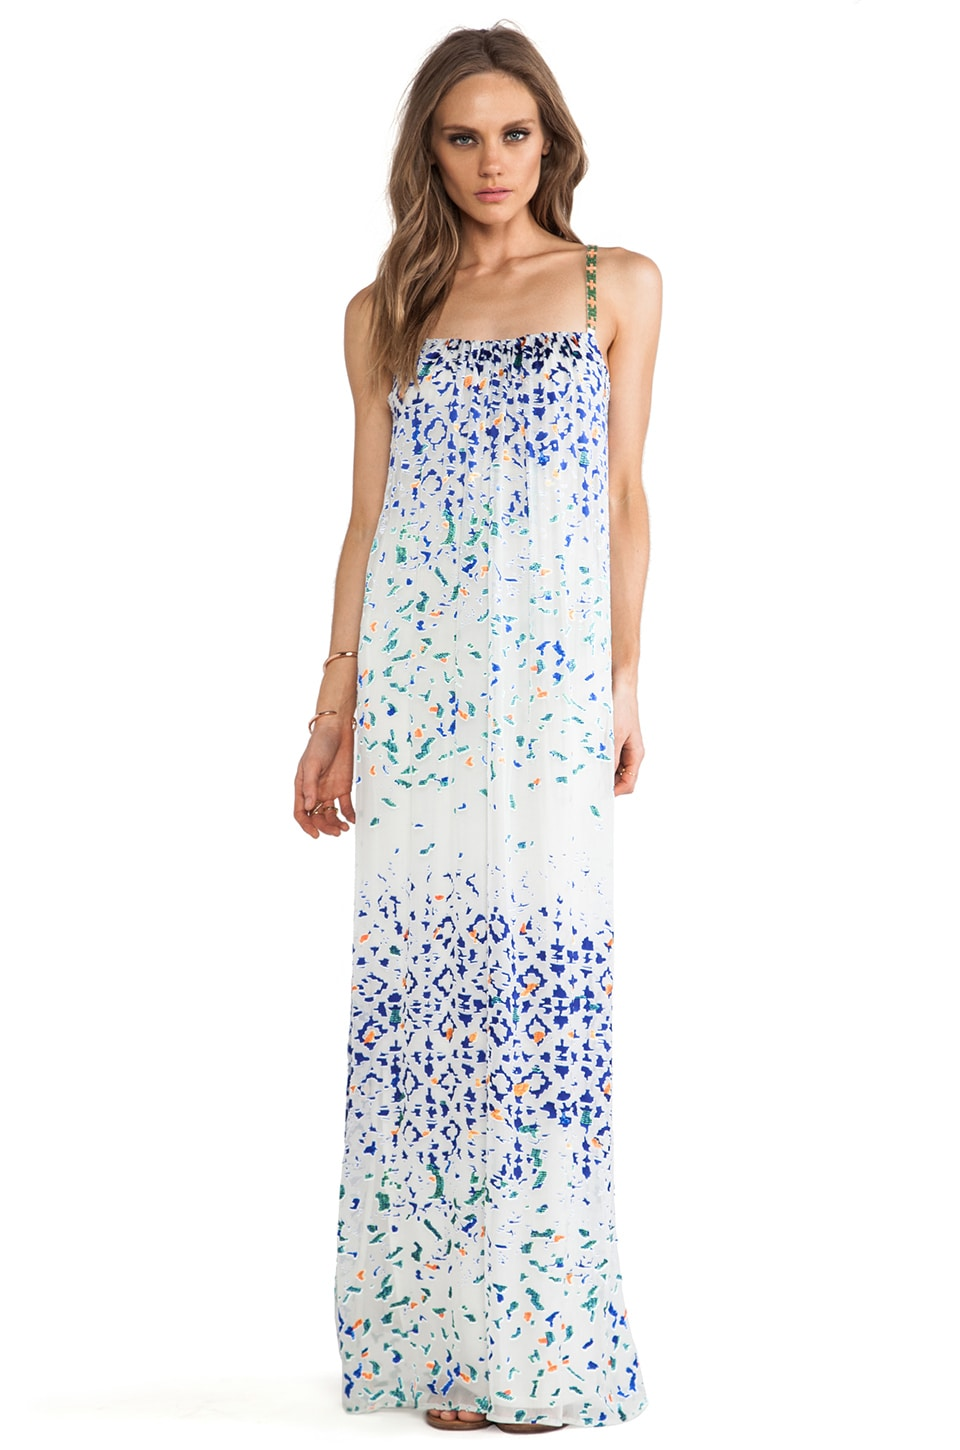 Twelfth Street By Cynthia Vincent Beaded Strap Maxi Dress in Multi